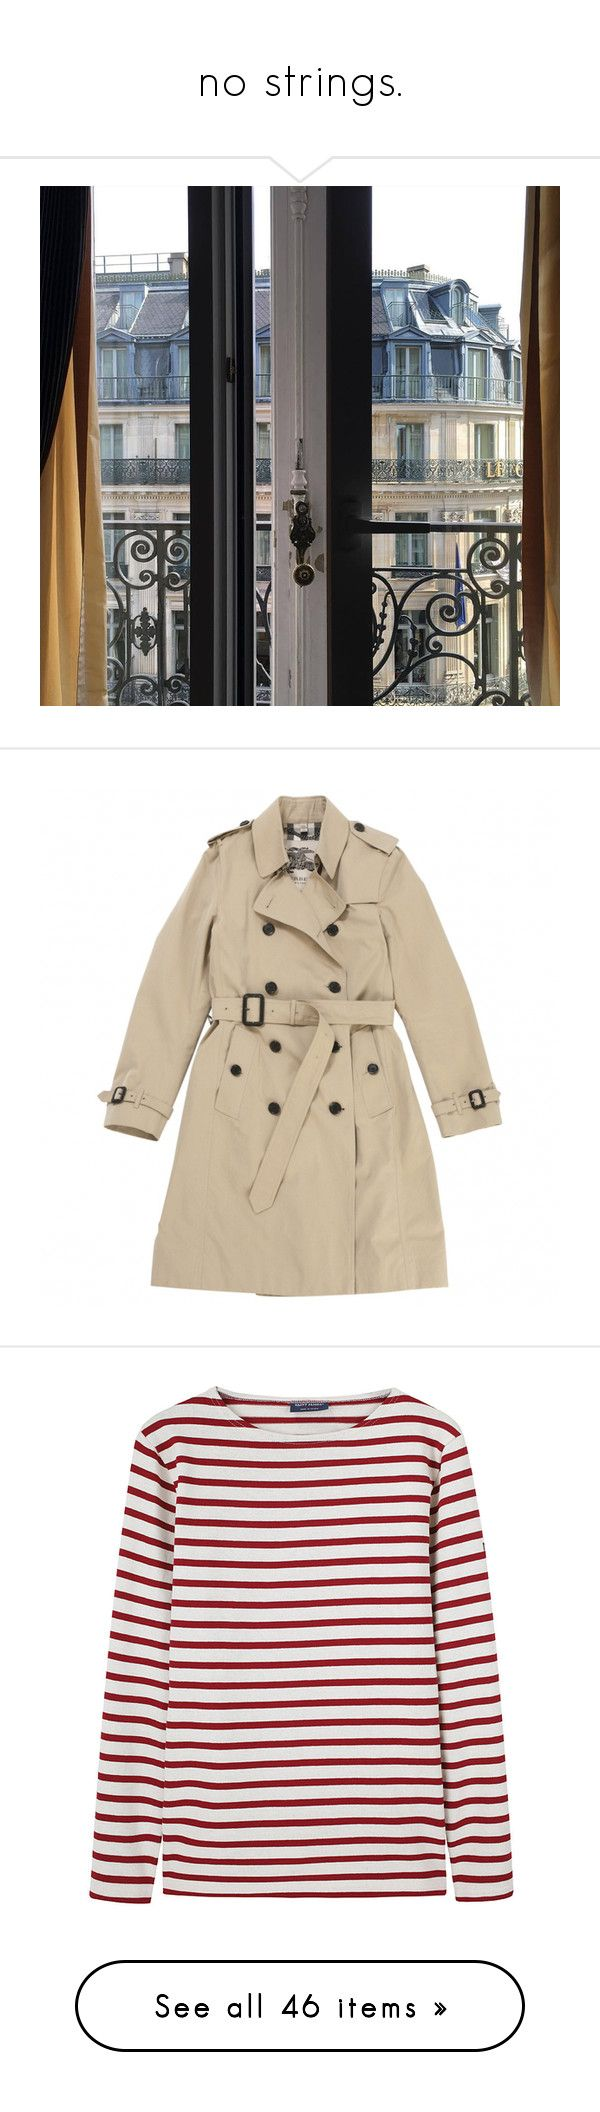 """""""no strings."""" by sickrentgirl ❤ liked on Polyvore featuring outerwear, coats, jackets, beige trenchcoat, burberry, brown coat, brown trench coat, burberry coat, tops and t-shirts"""